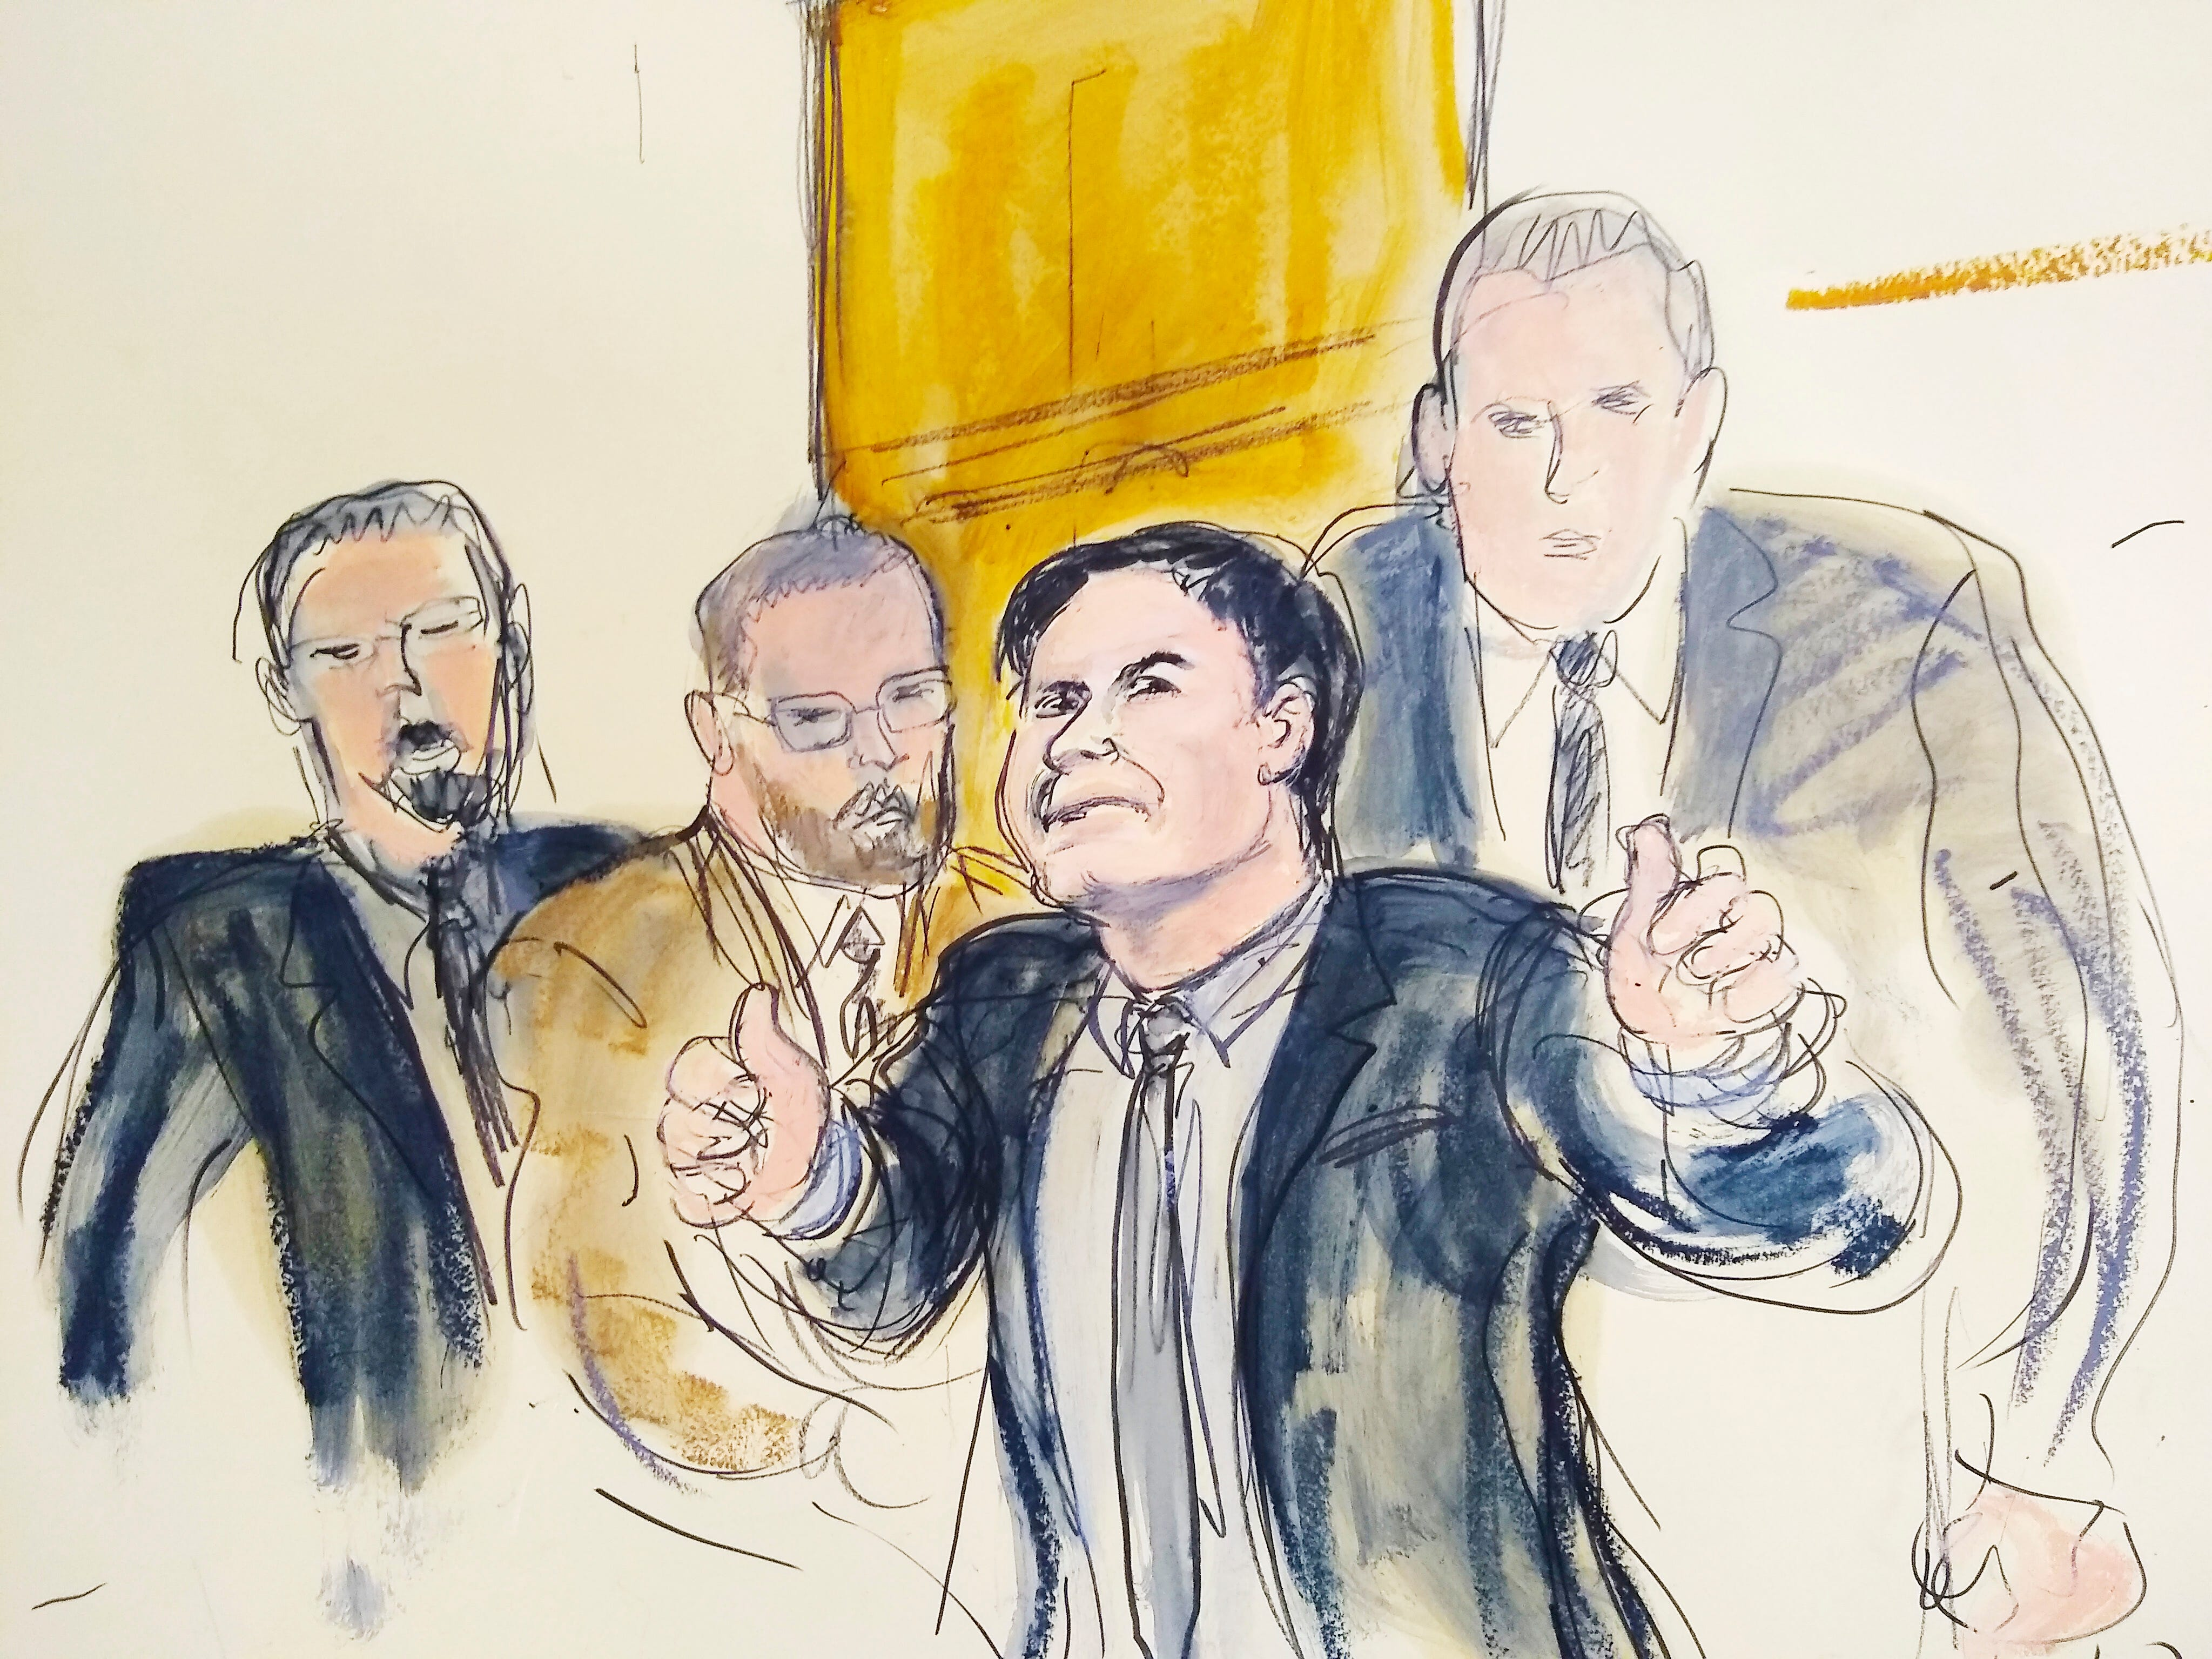 """In a courtroom drawing, Joaquin """"El Chapo"""" Guzman, second from right, accompanied by U.S. Marshalls, gestures a """"thumbs up"""" to his wife, Emma Coronel Aispuro, as he leaves the courtroom, Tuesday, Feb. 12, 2019, in New York. The notorious Mexican drug lord was convicted of drug-trafficking charges."""